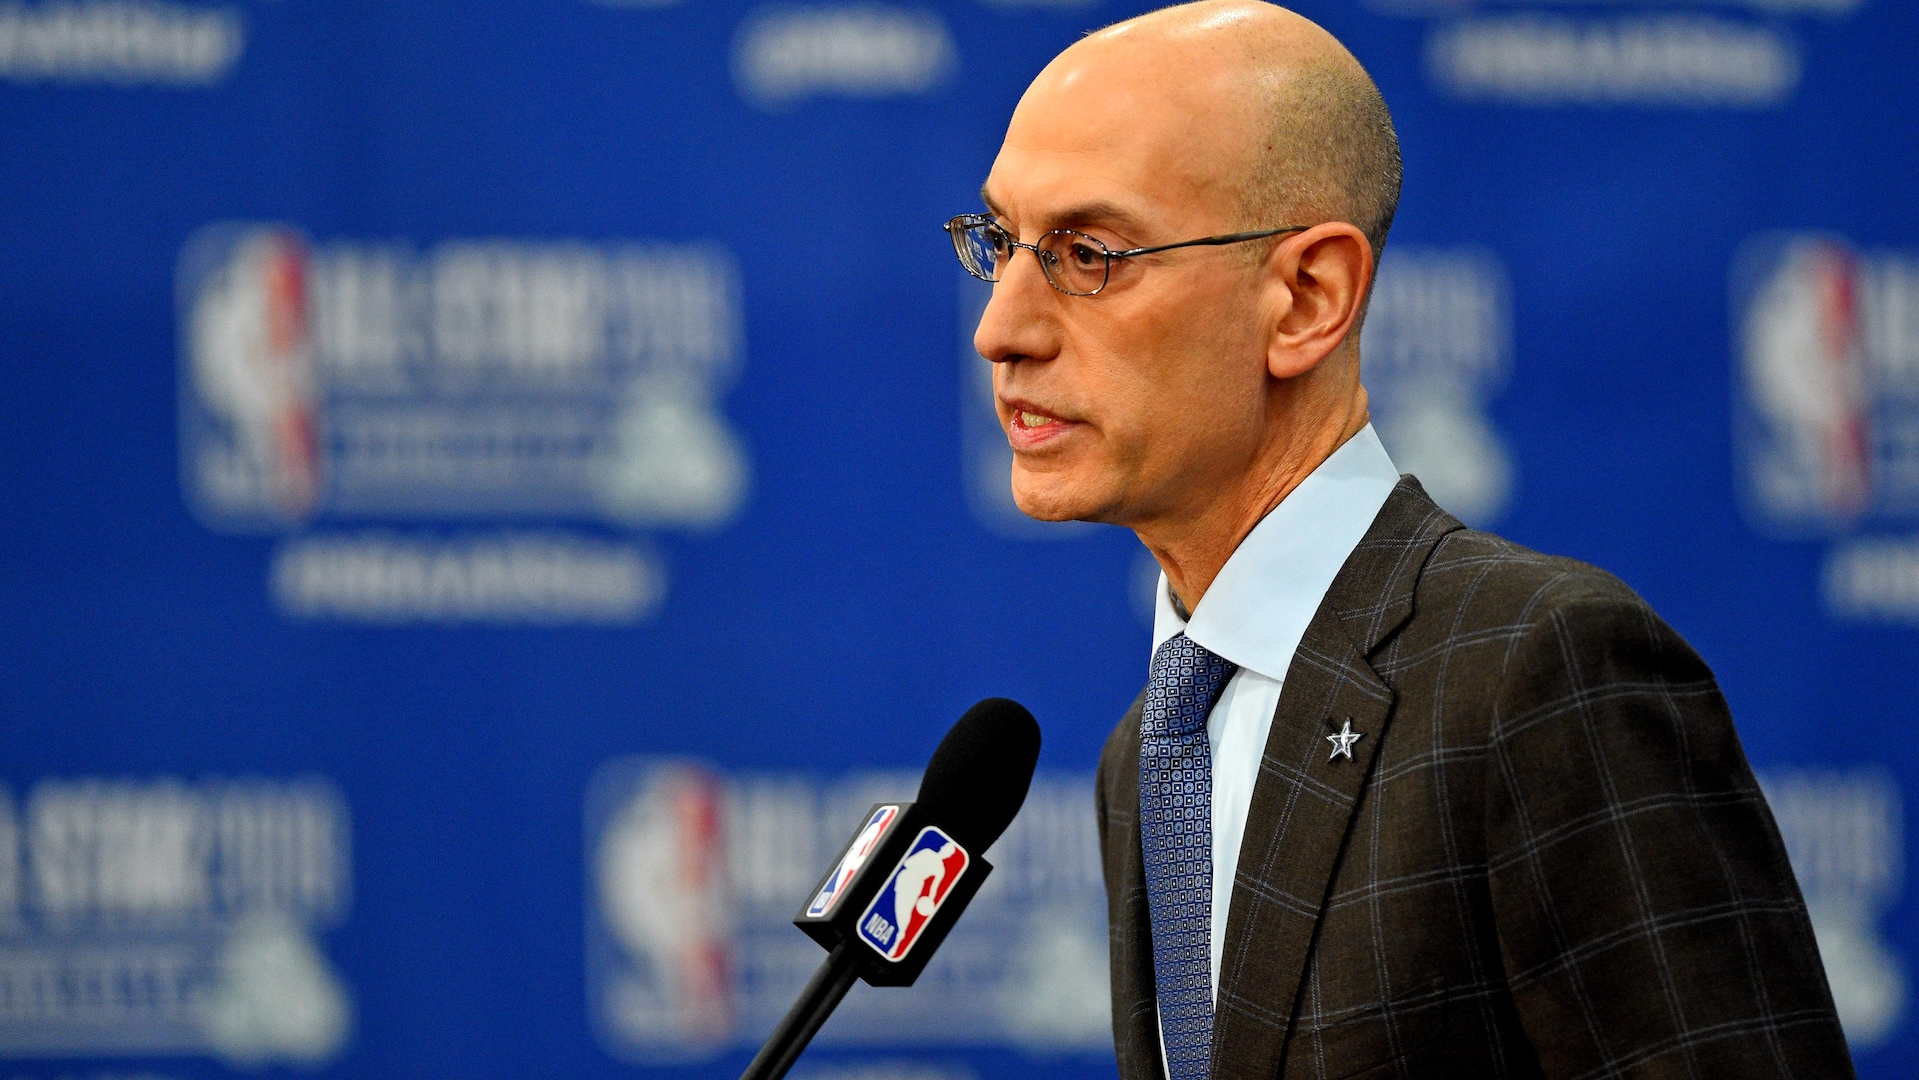 Adam Silver: 'Sustainable change is long overdue'